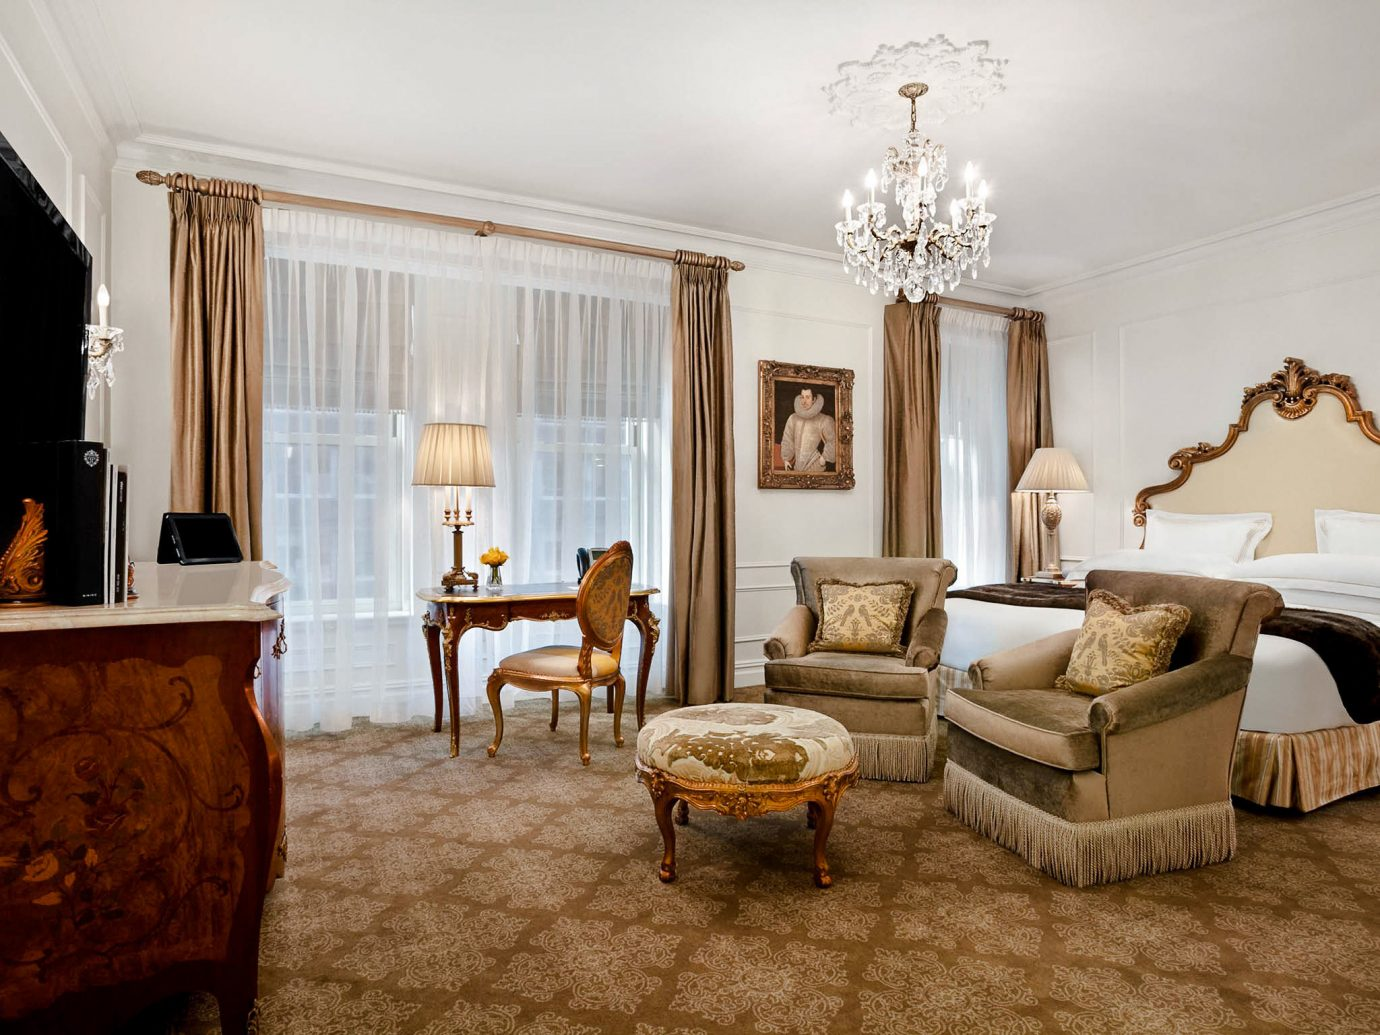 Hotels Luxury Travel Romantic Hotels floor indoor wall chair room living room property interior design furniture home ceiling Suite real estate estate flooring table window interior designer Bedroom decorated several